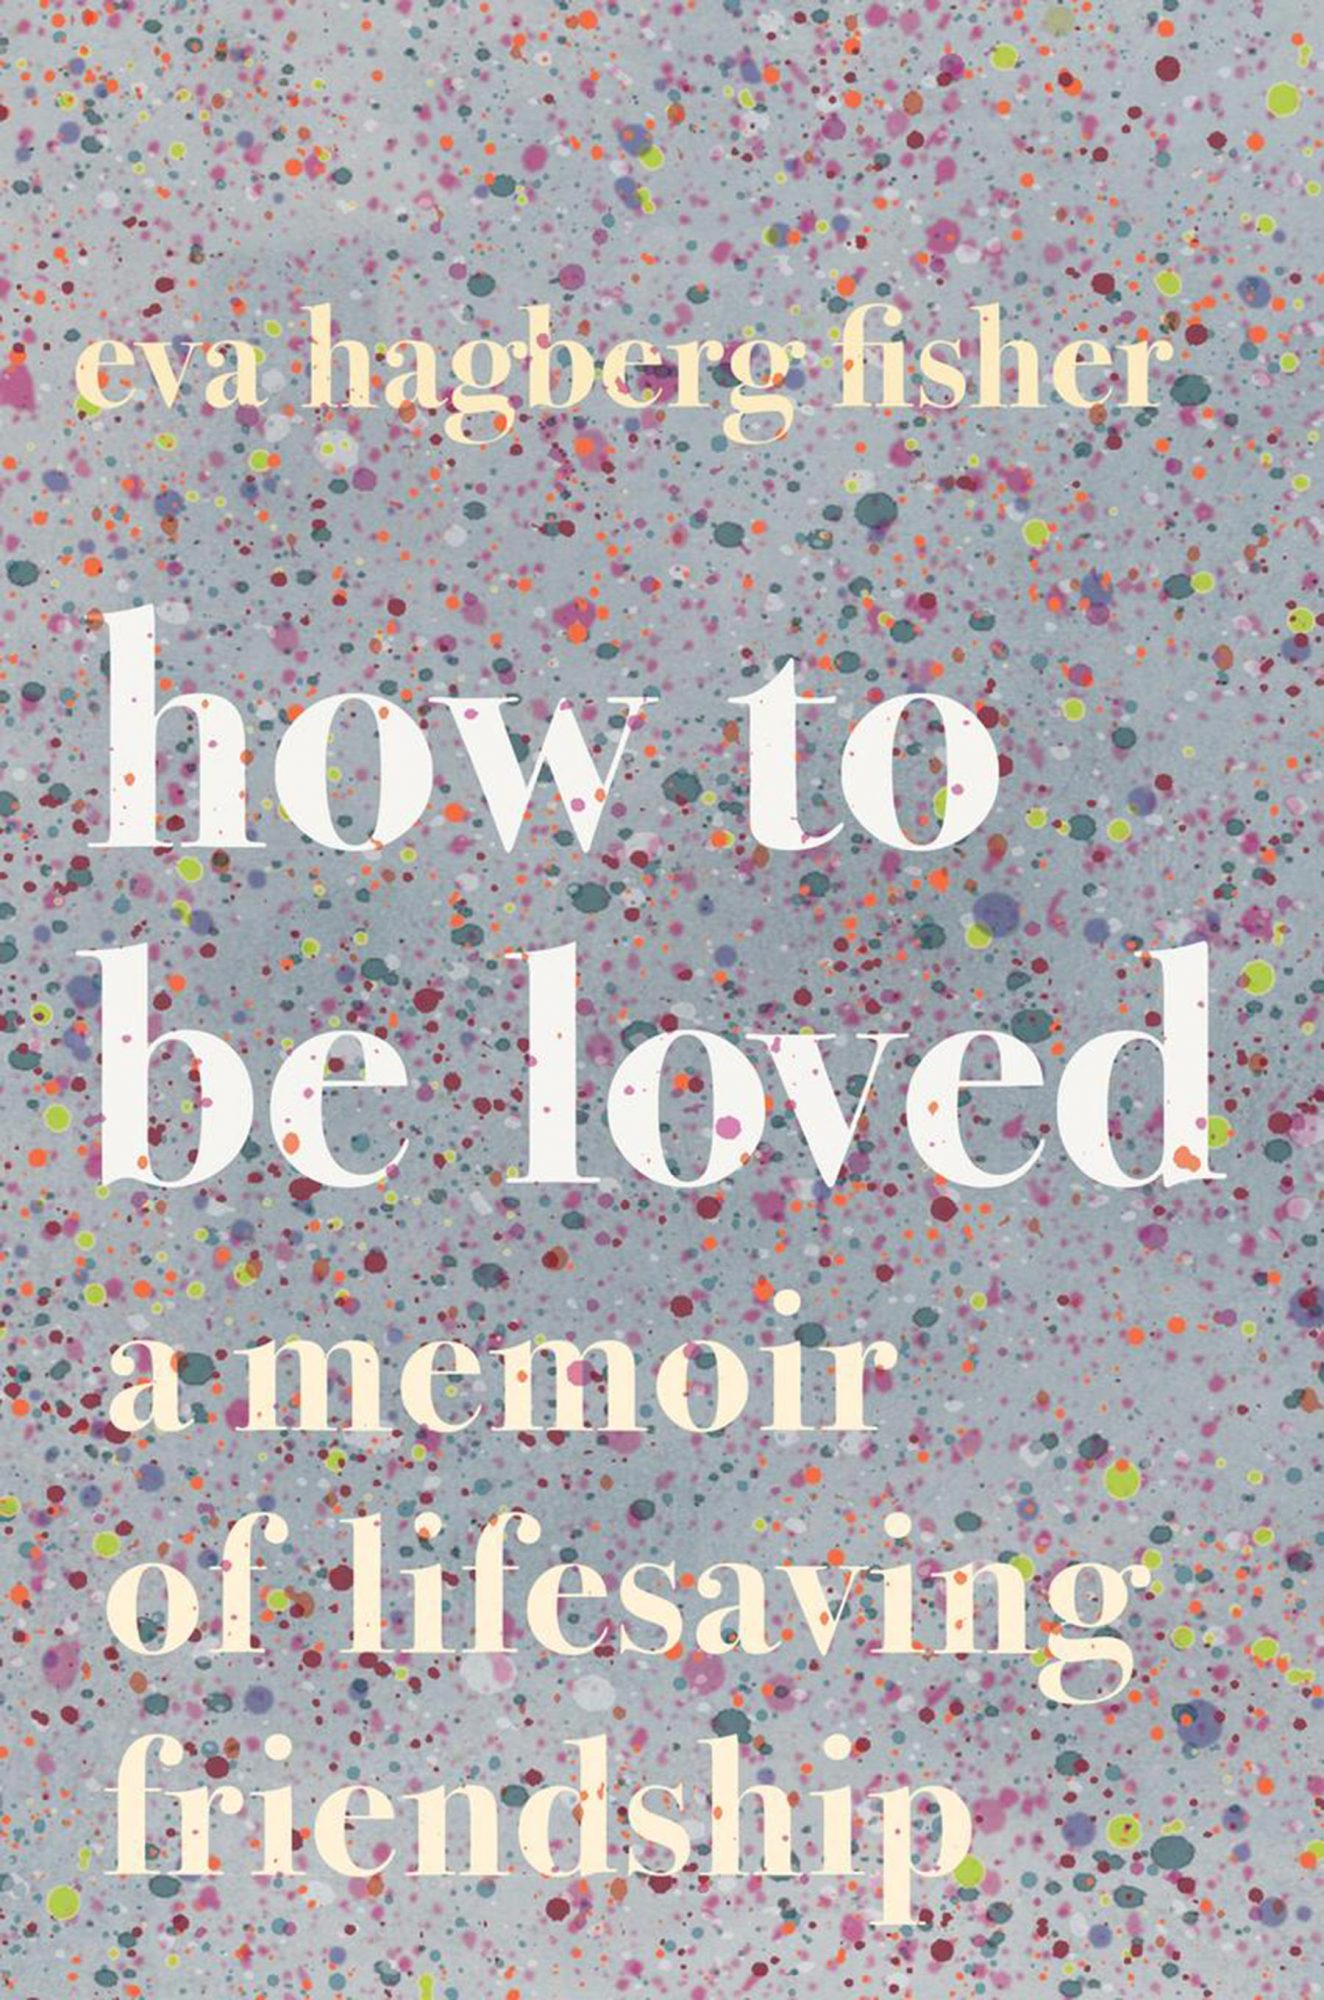 Eva Hagberg Fisher, How to Be LovedPublisher: Houghton Mifflin Harcourt